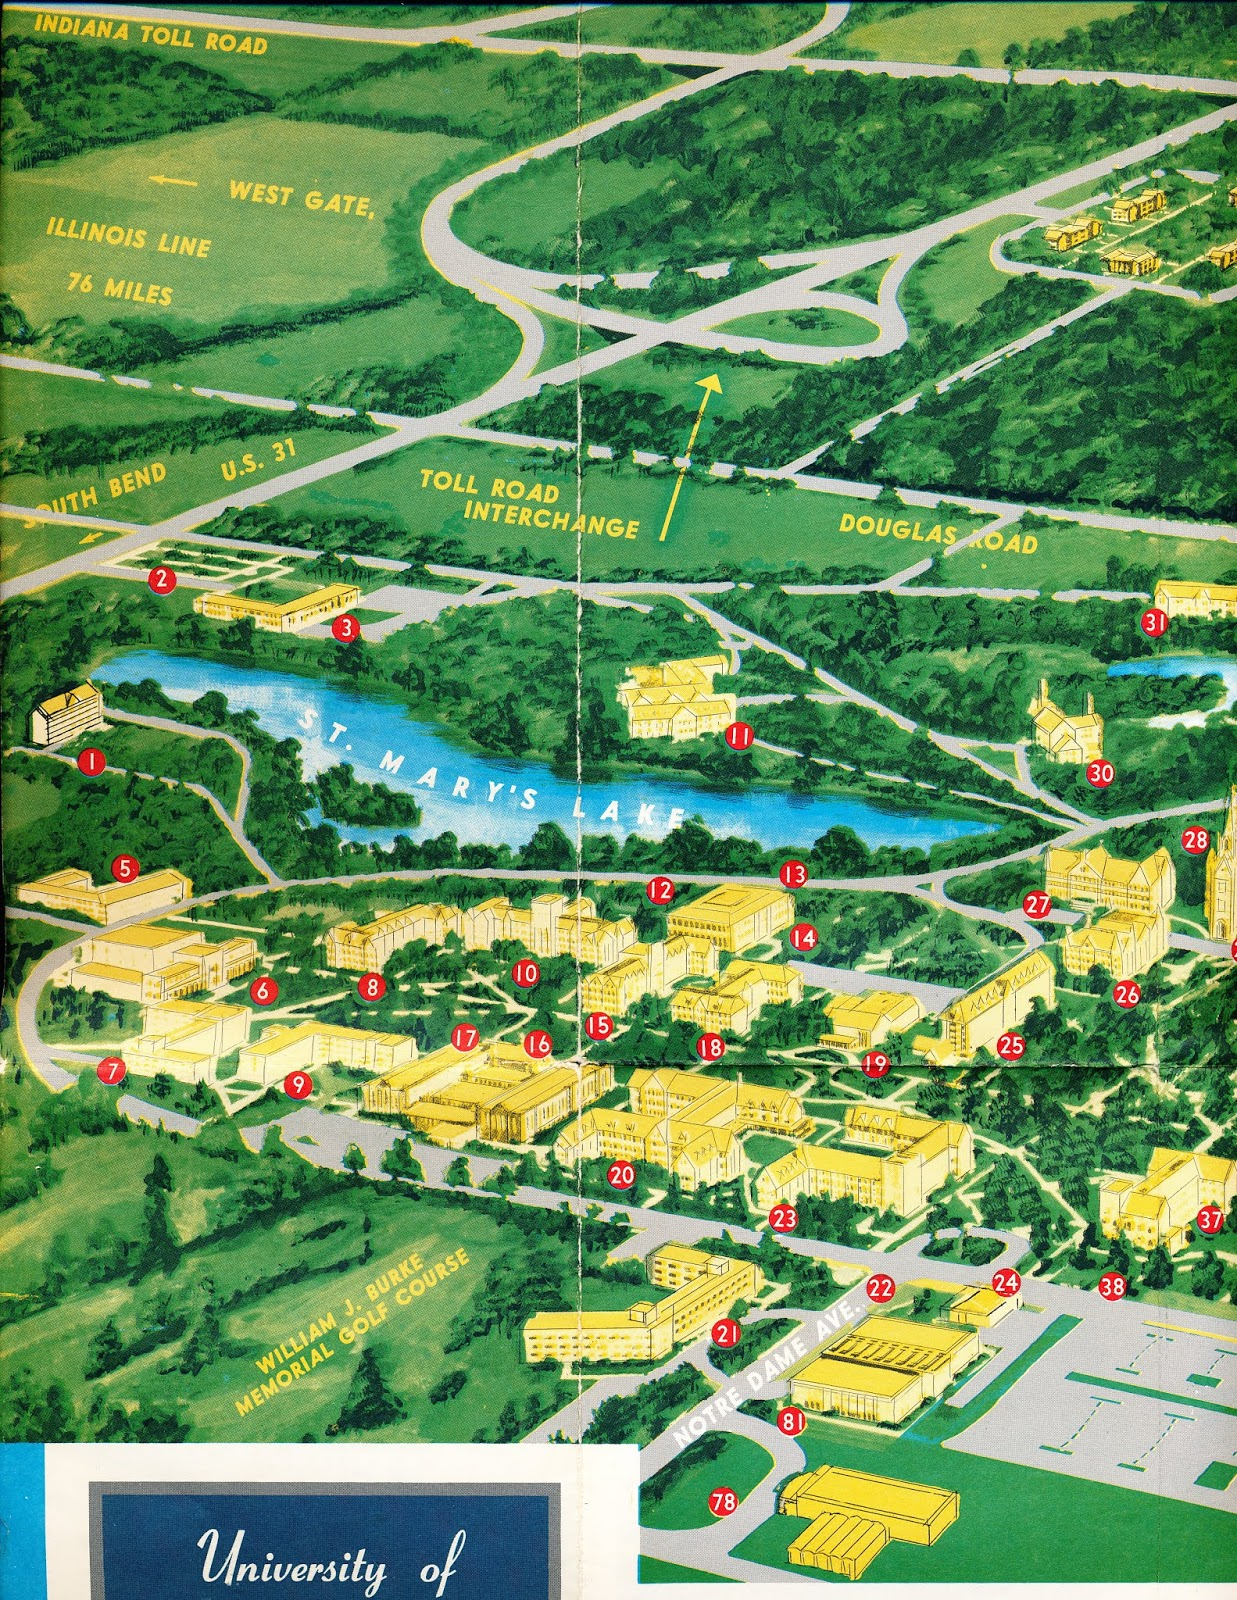 Lourdes University Campus Map.Ca 1968 University Of Notre Dame Campus Guide And Map By John